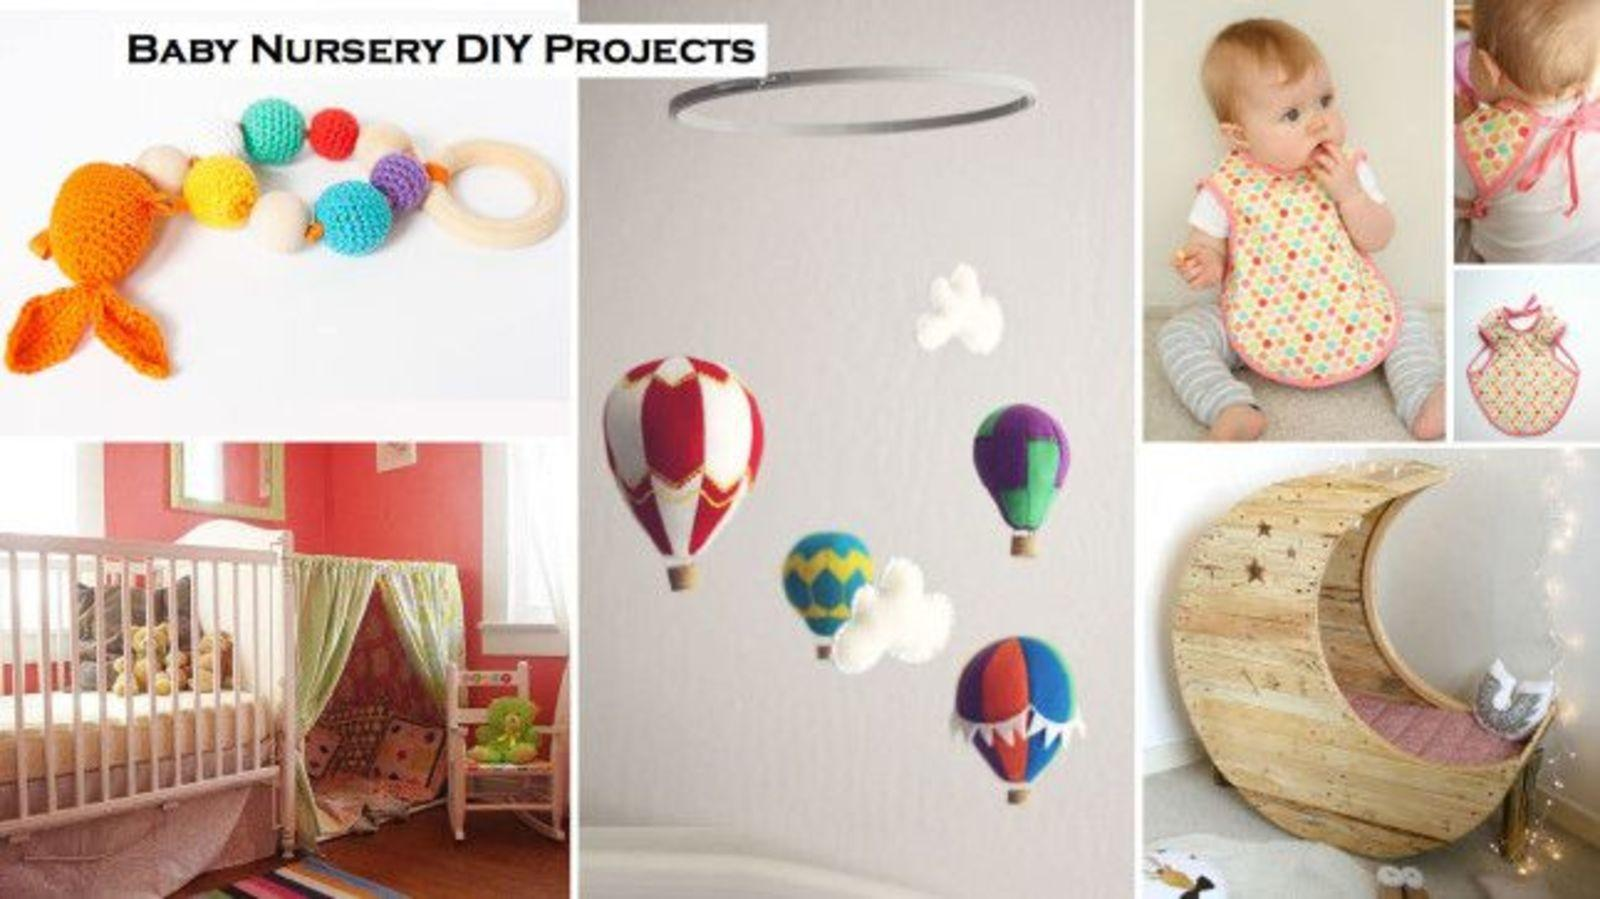 Getting Ready For A Baby 22 Diy Projects To Craft For Your Newborn And Their Nursery Closer